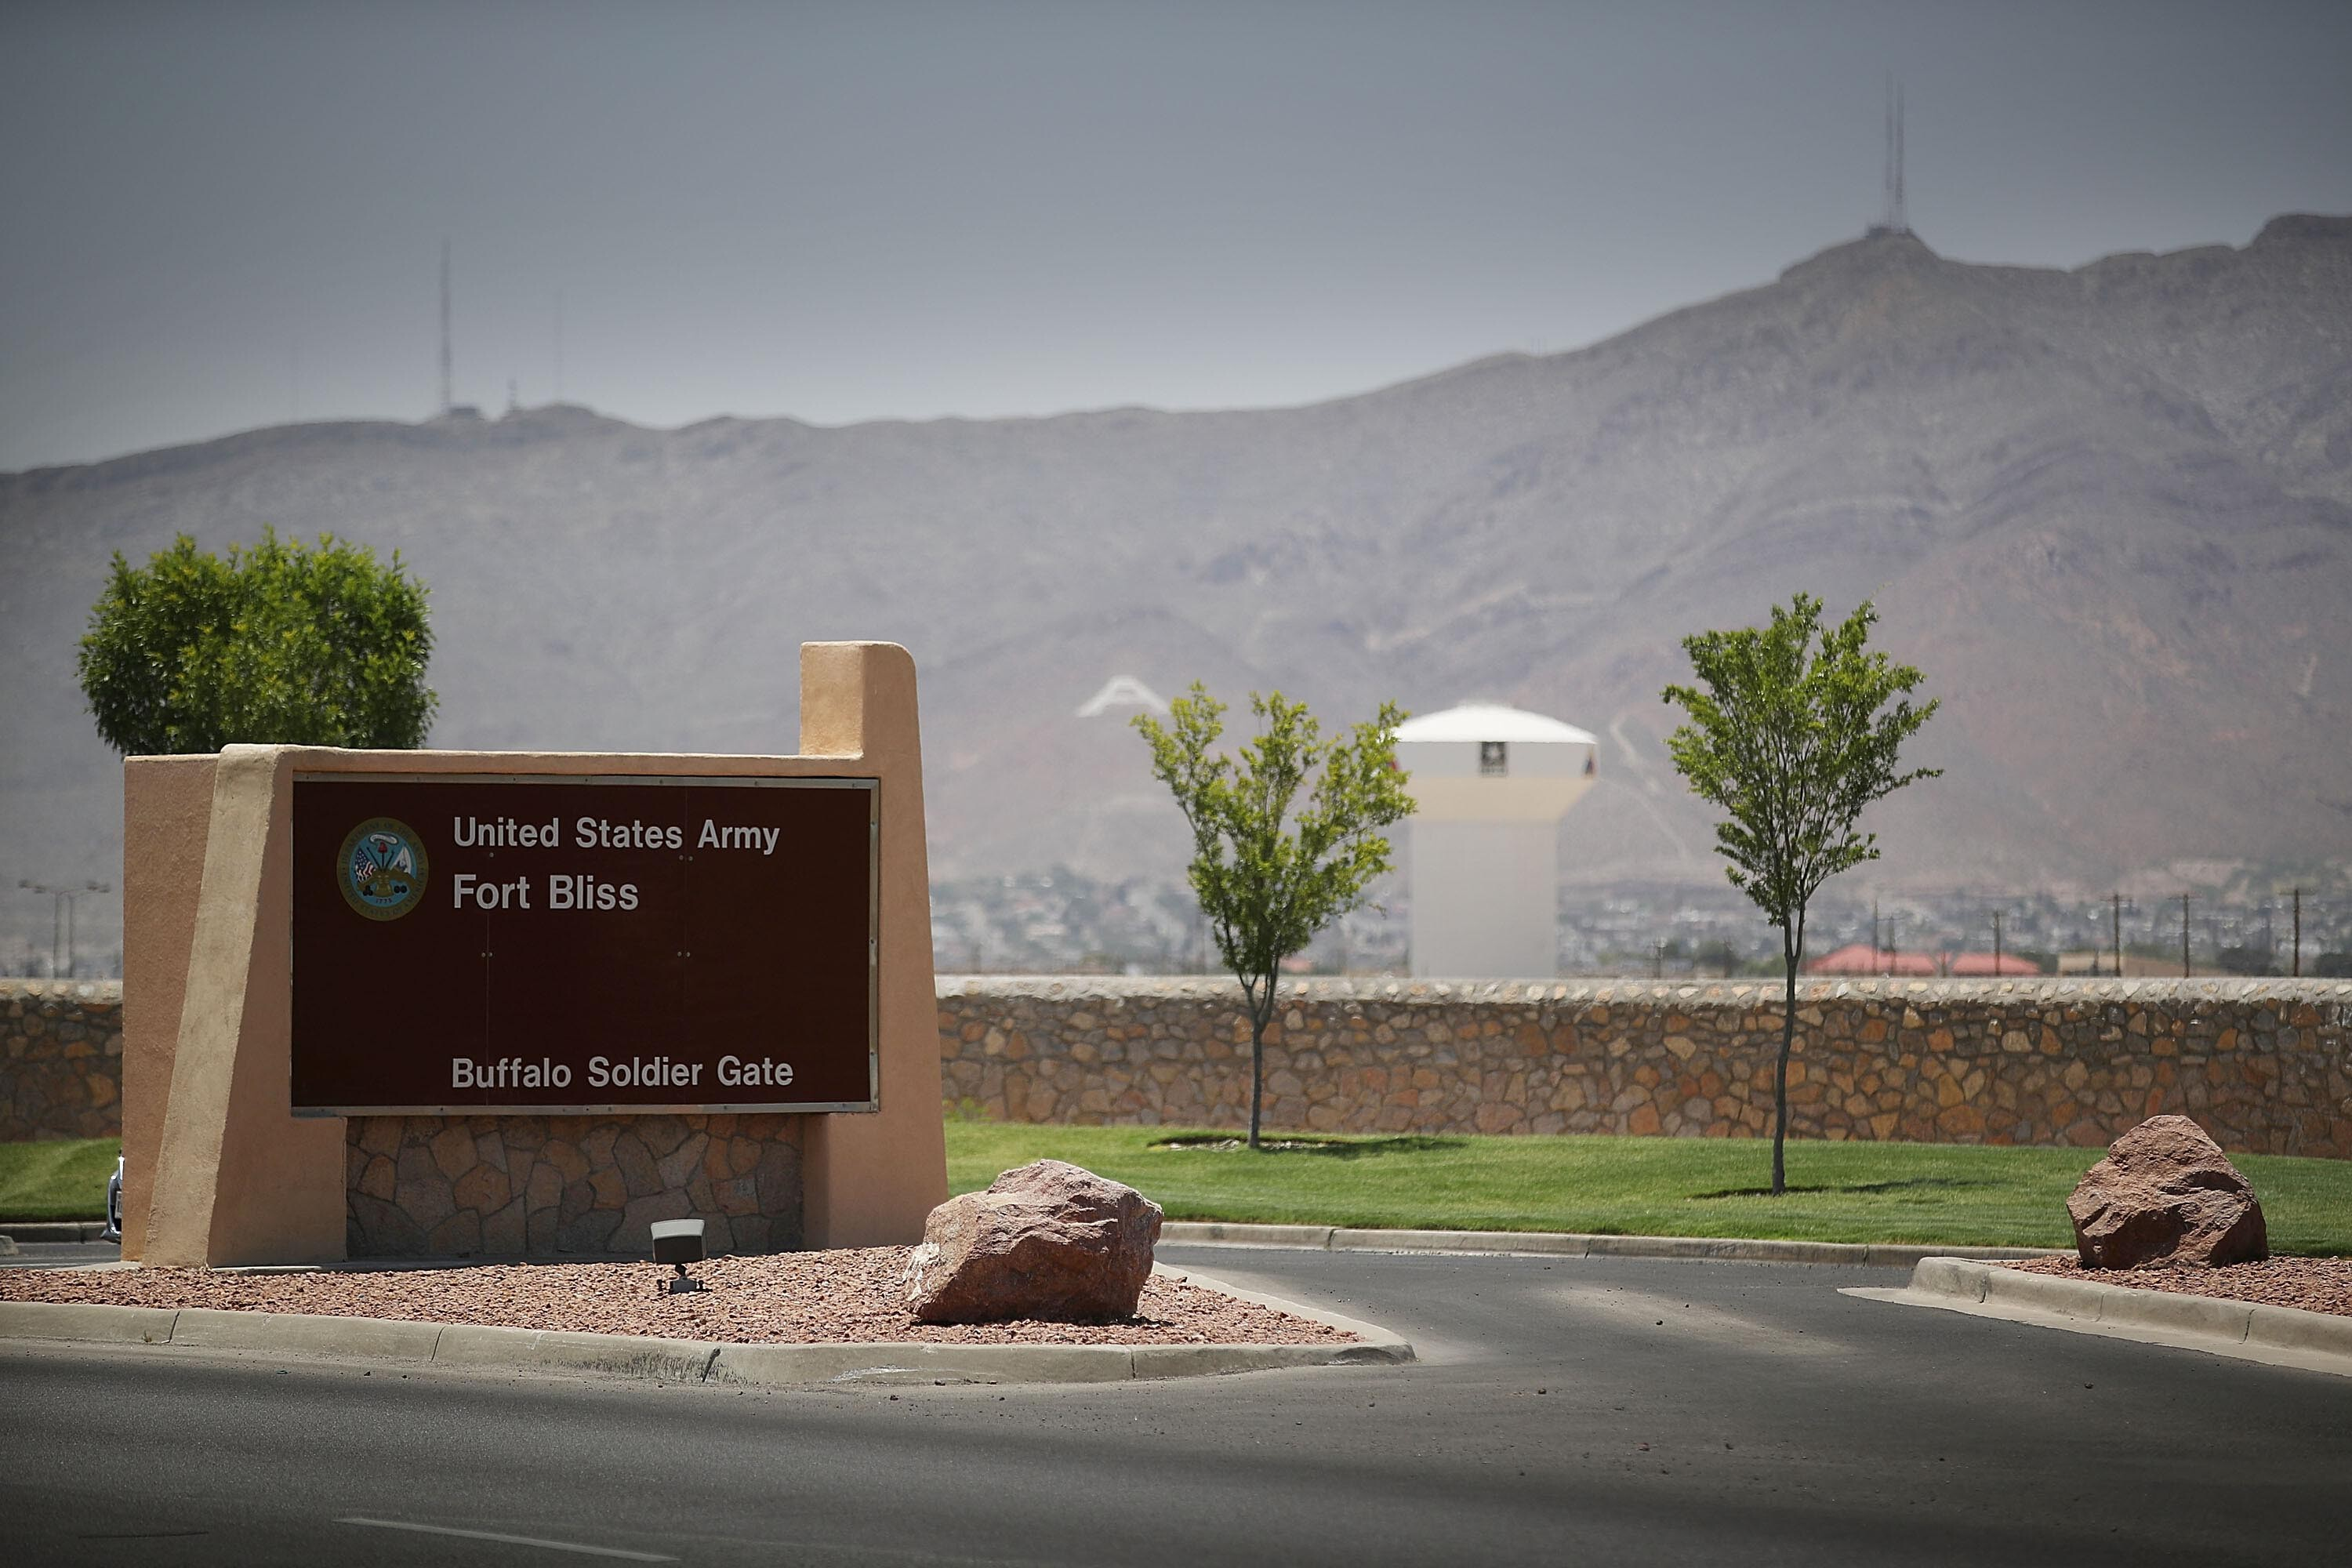 Whistleblowers allege poor conditions at Fort Bliss facility for migrant children